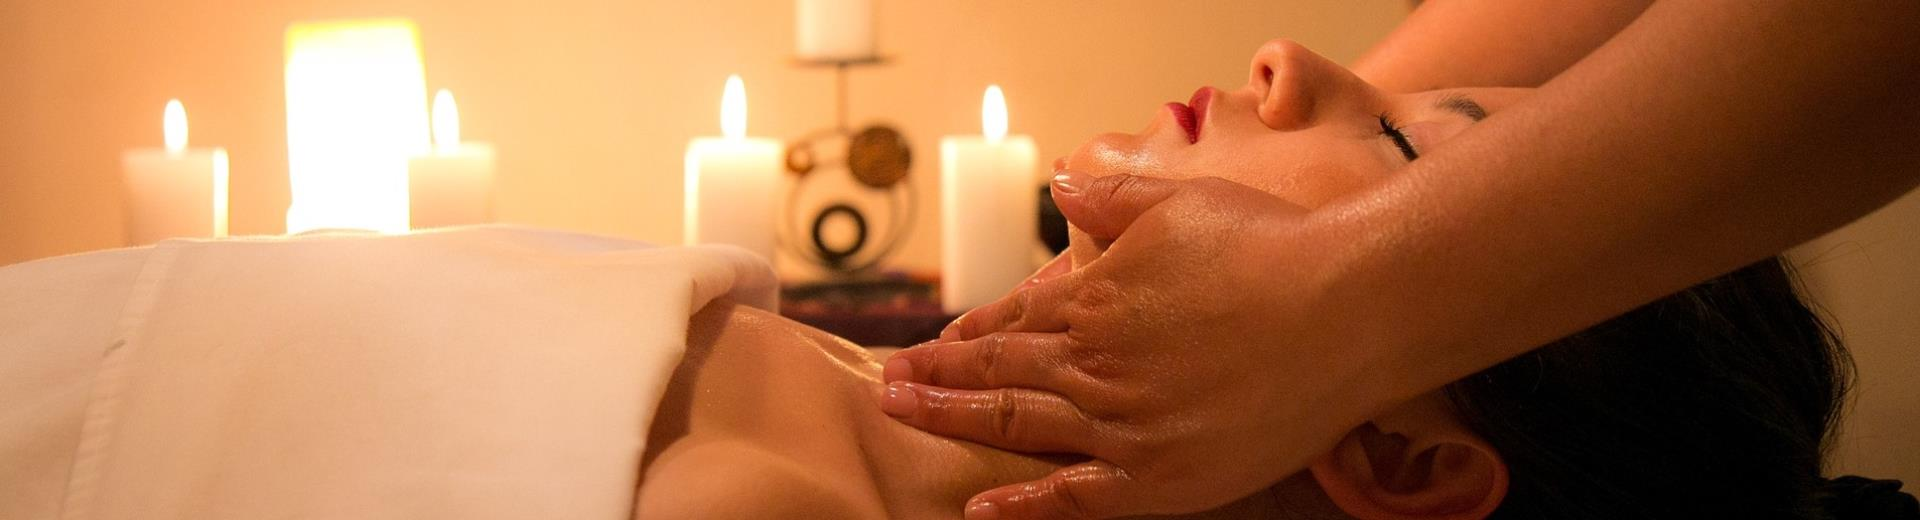 In the Wellness centre of the Best Western Hotel San Marco in Siena we offer massages and treatments of different types